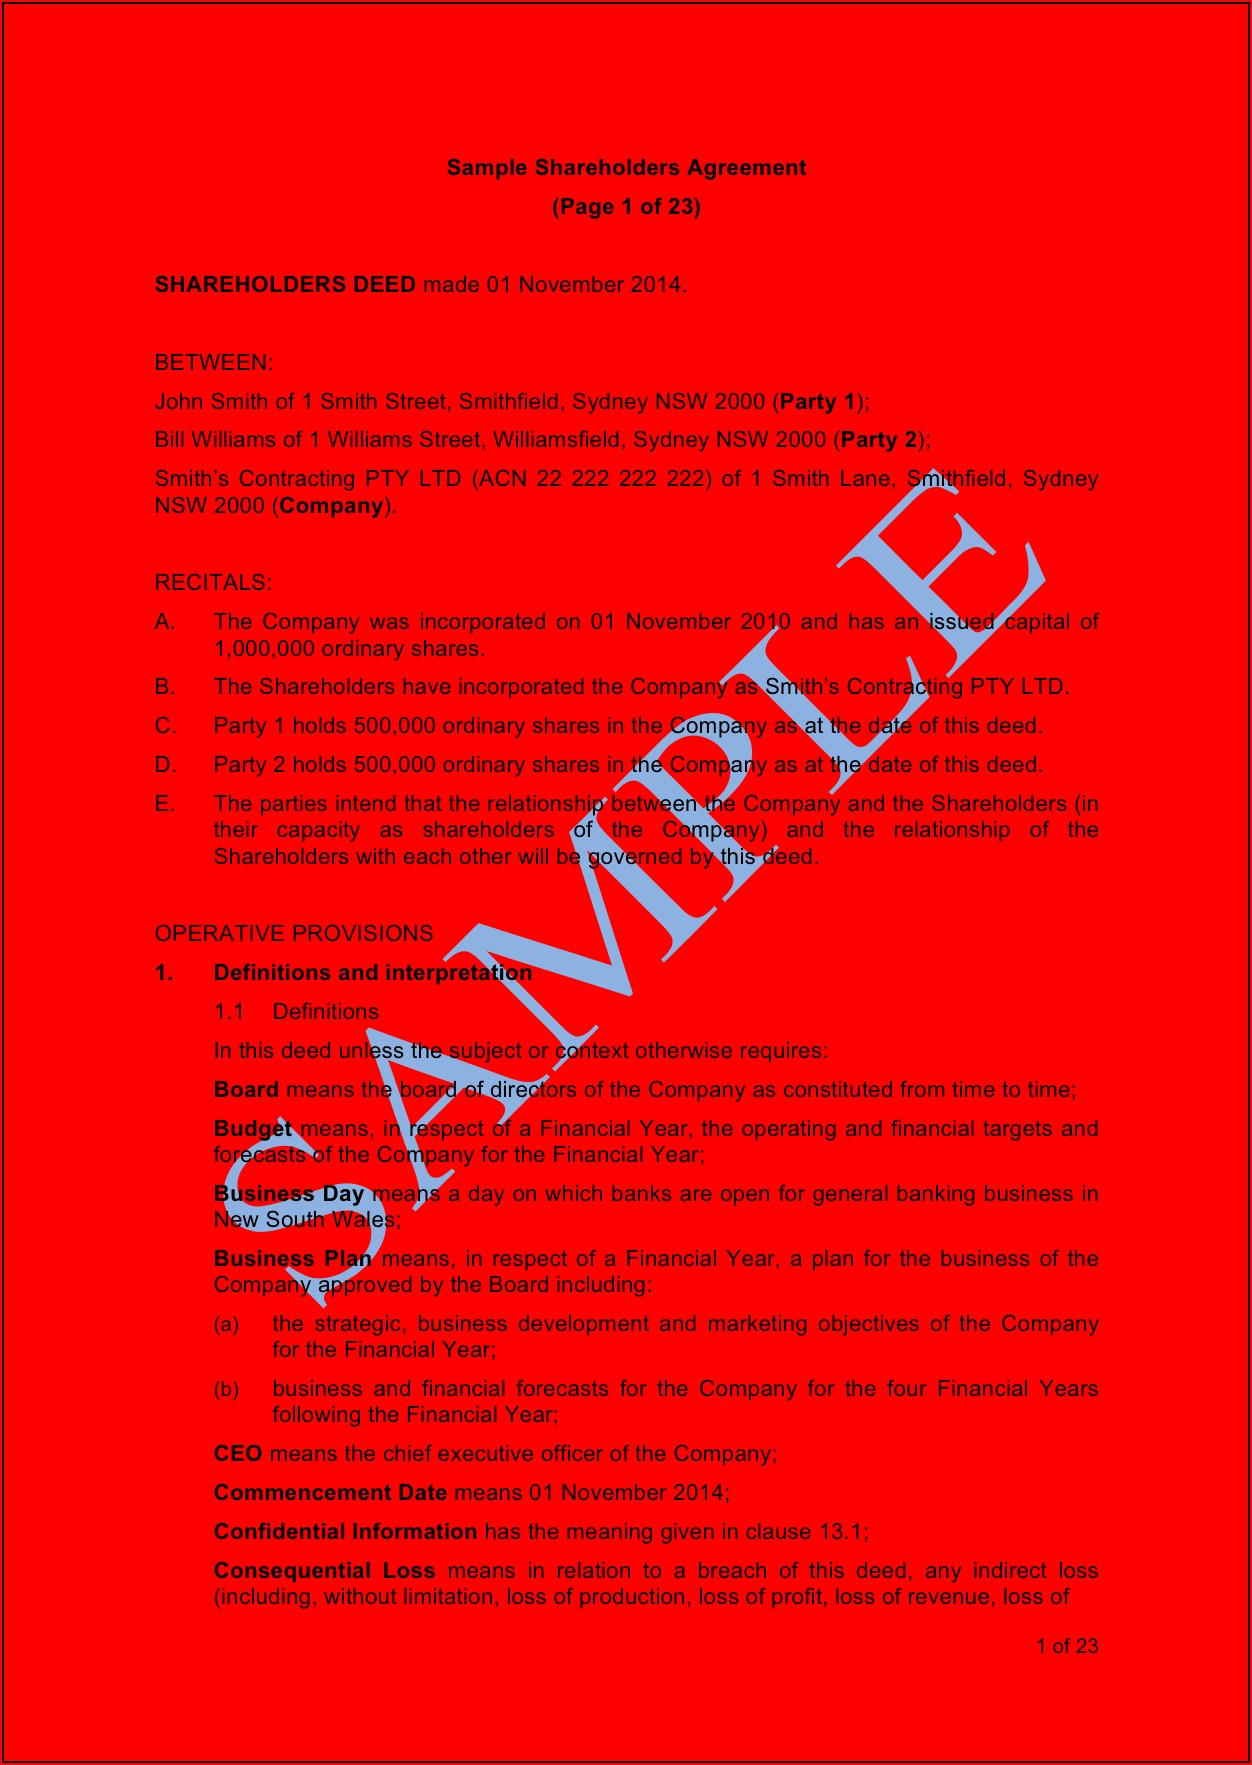 Shareholder Agreement Voting Rights Template